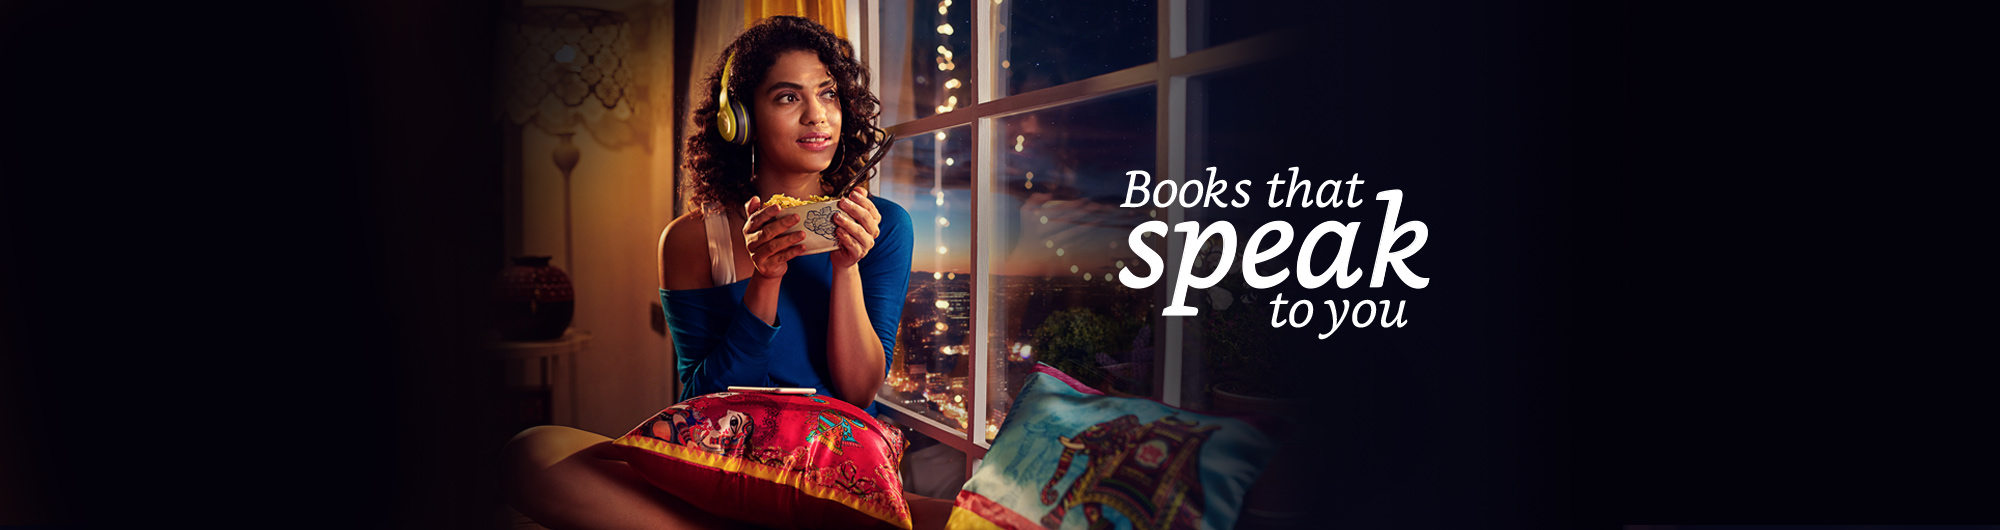 Audible, books that speak to you